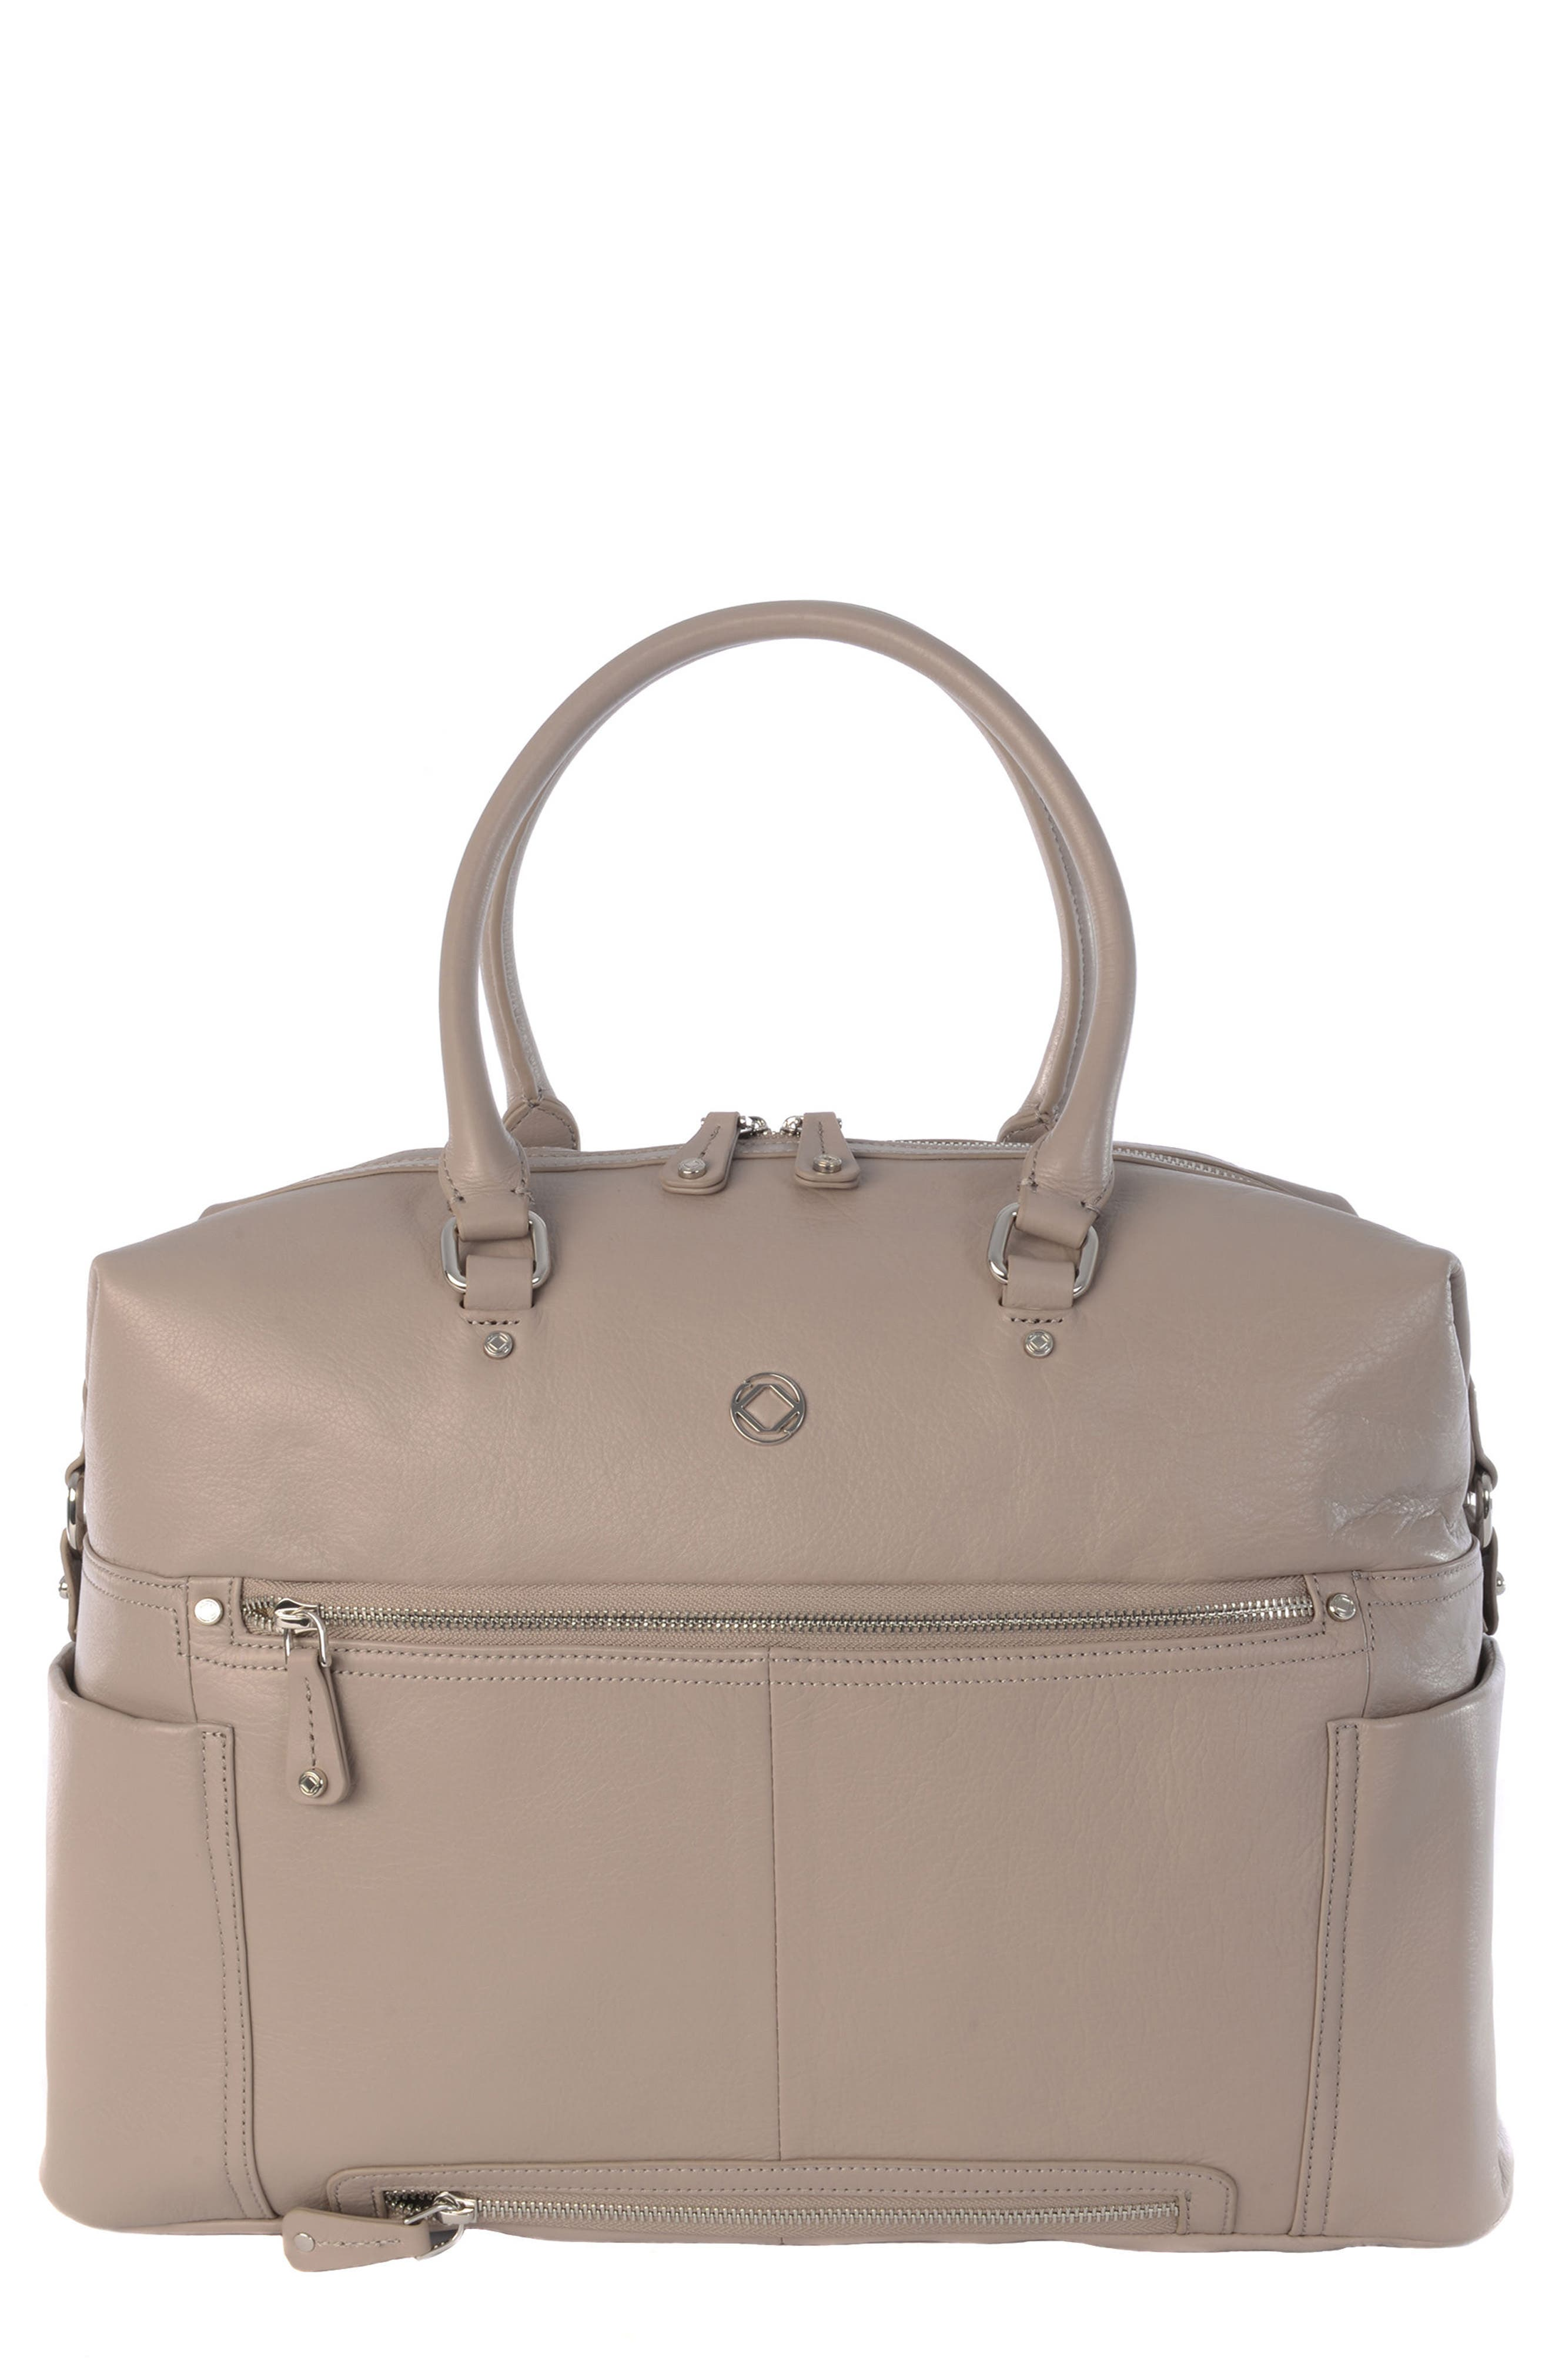 Thea Leather Satchel,                         Main,                         color, Warm Grey/ Silver